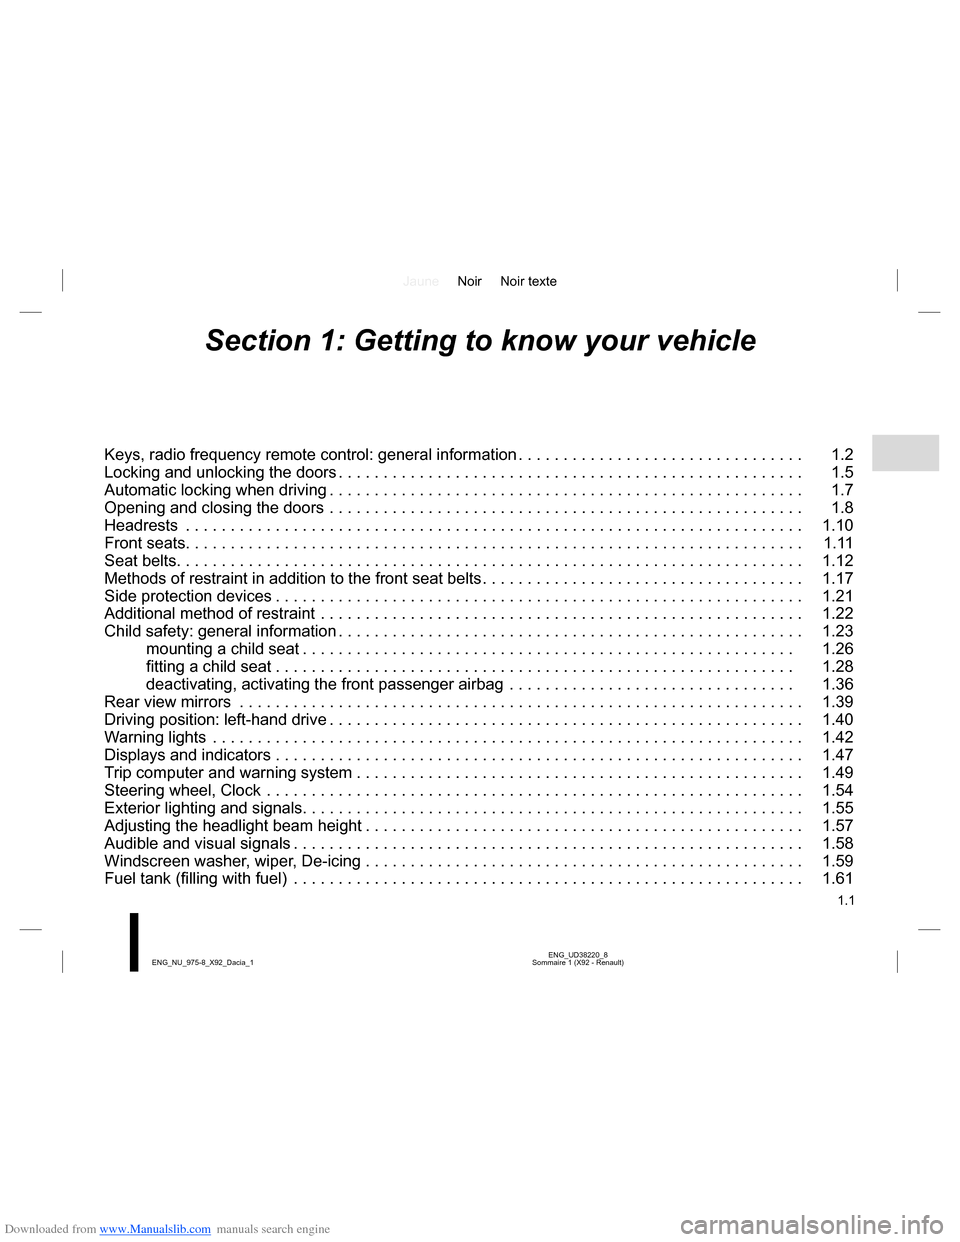 DACIA LODGY 2013 1.G Owners Manual Downloaded from www.Manualslib.com manuals search engine JauneNoir Noir texte 1.1 ENG_UD38220_8 Sommaire 1 (X92 - Renault) ENG_NU_975-8_X92_Dacia_1 Section 1: Getting to know your vehicle Keys, radio